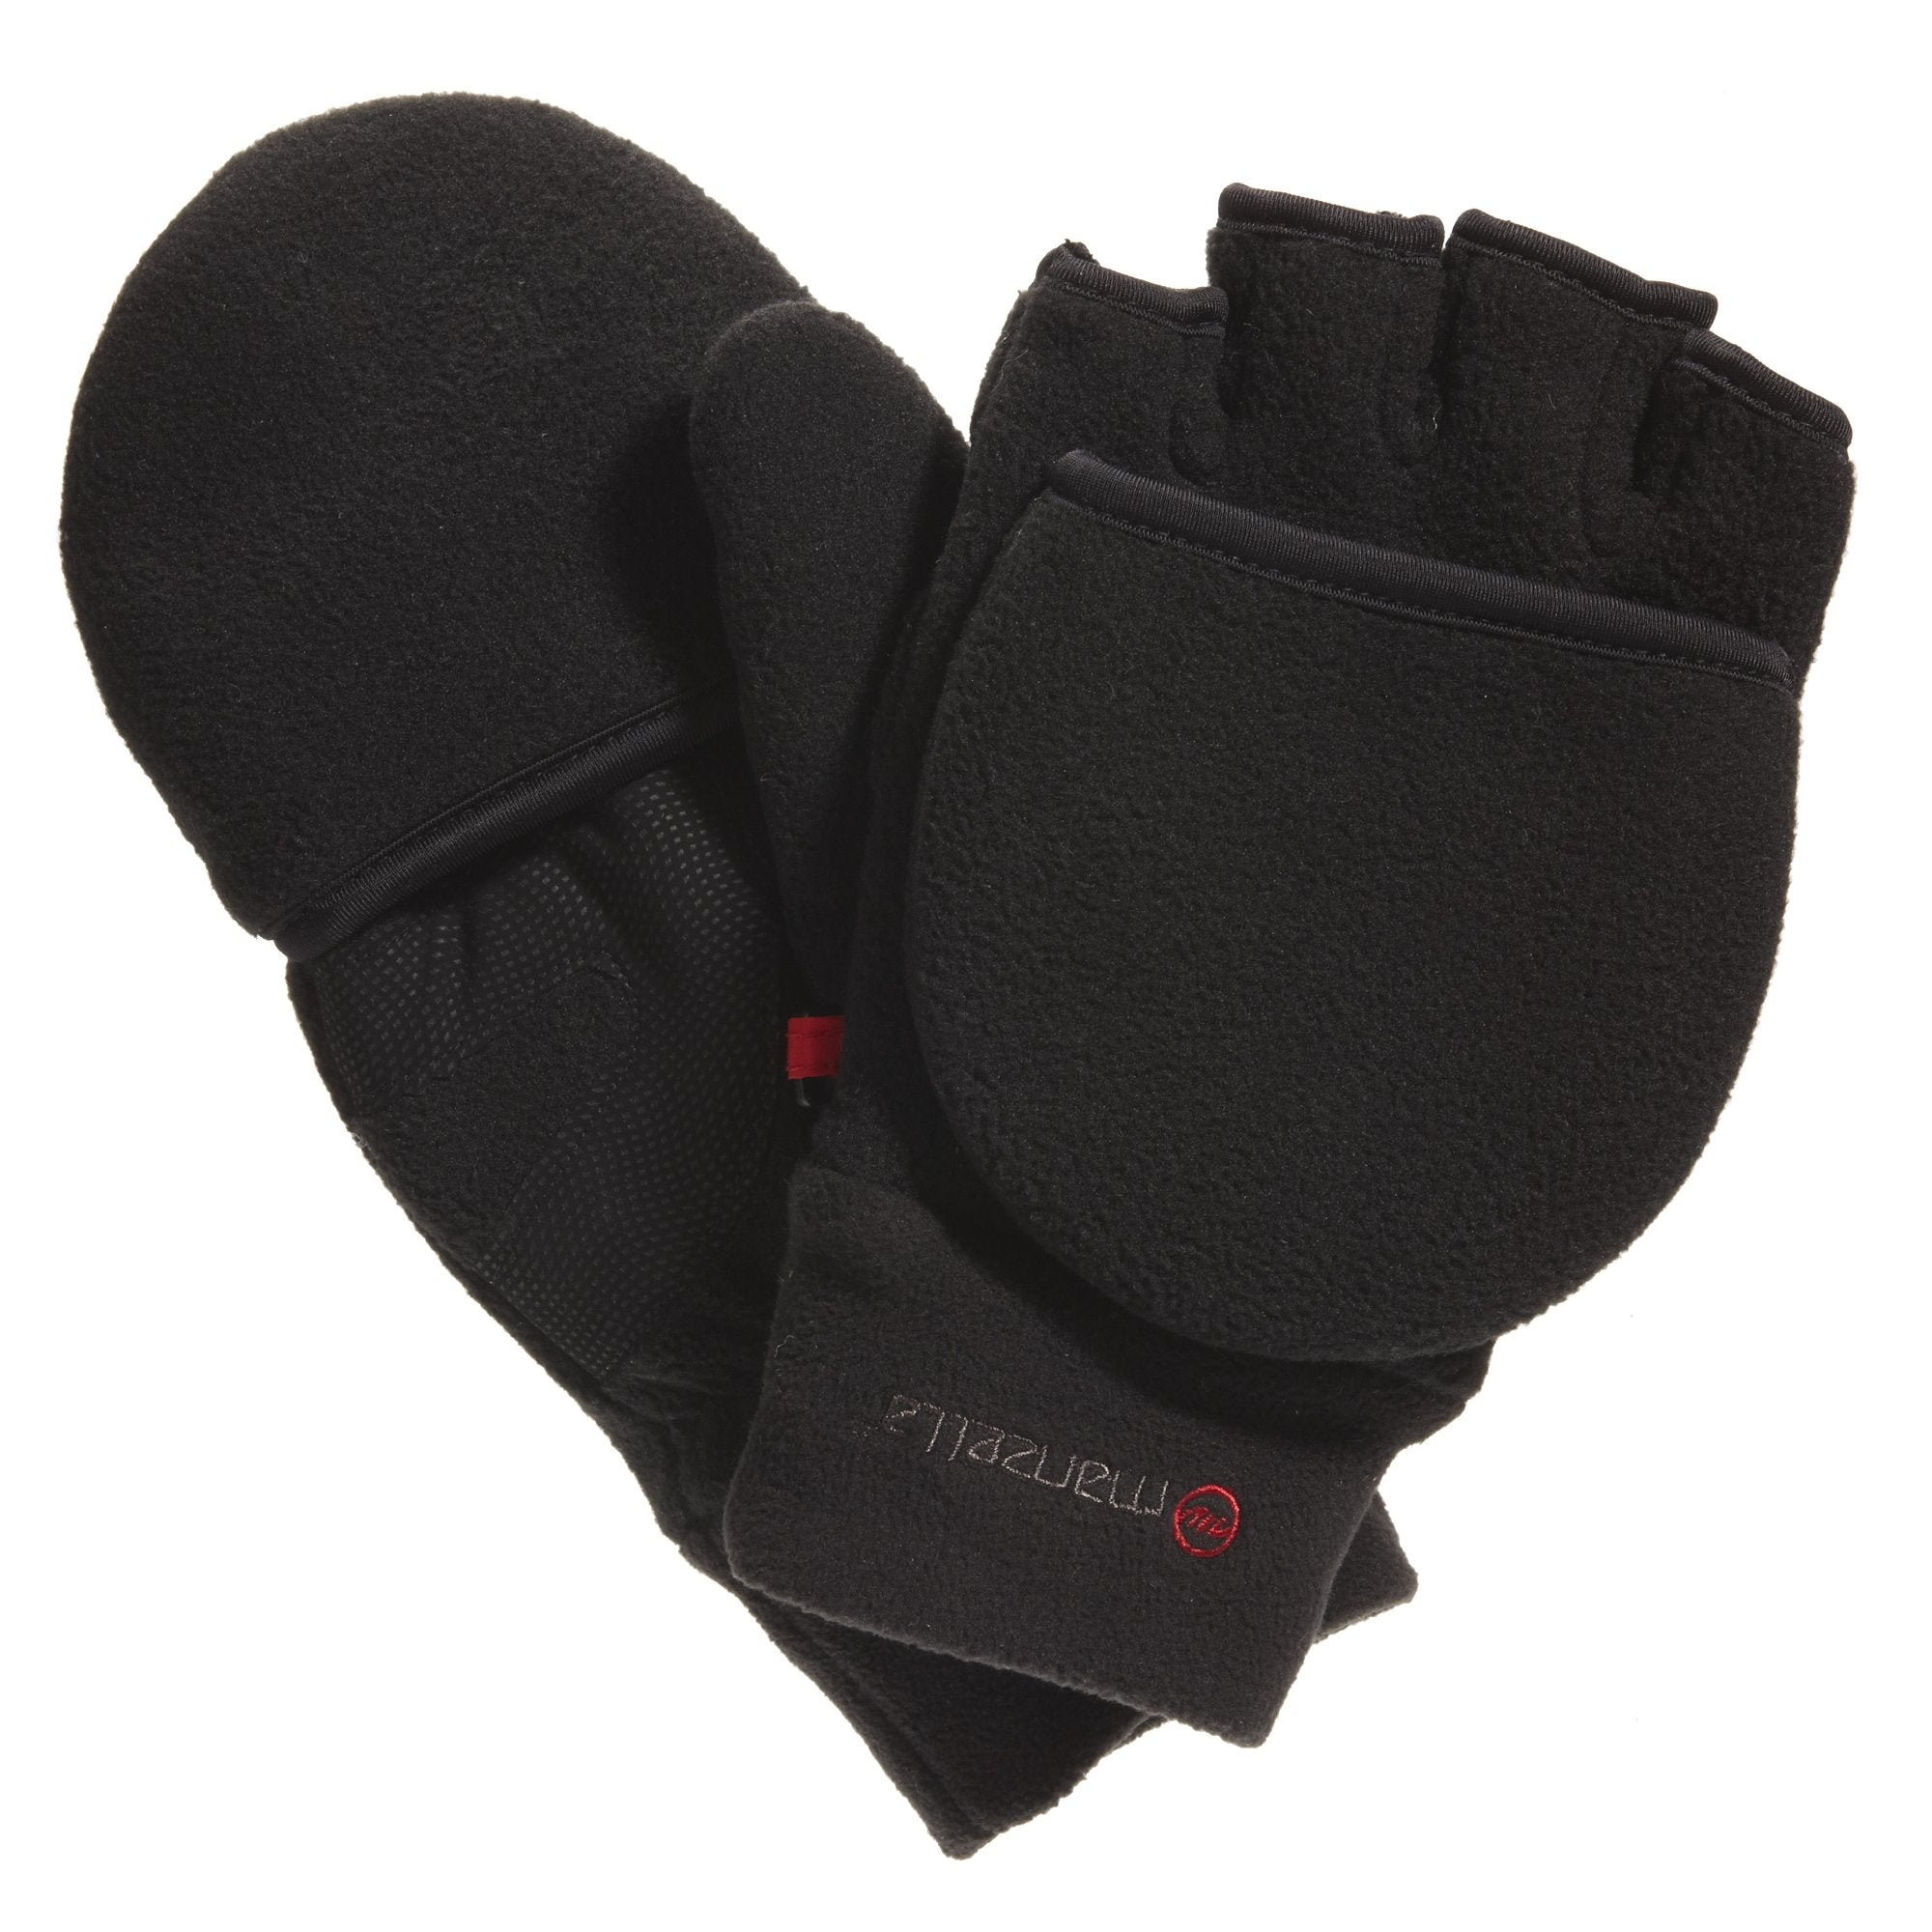 Men's Cascade Convertible Outdoor Gloves in Black Pair Straight On View